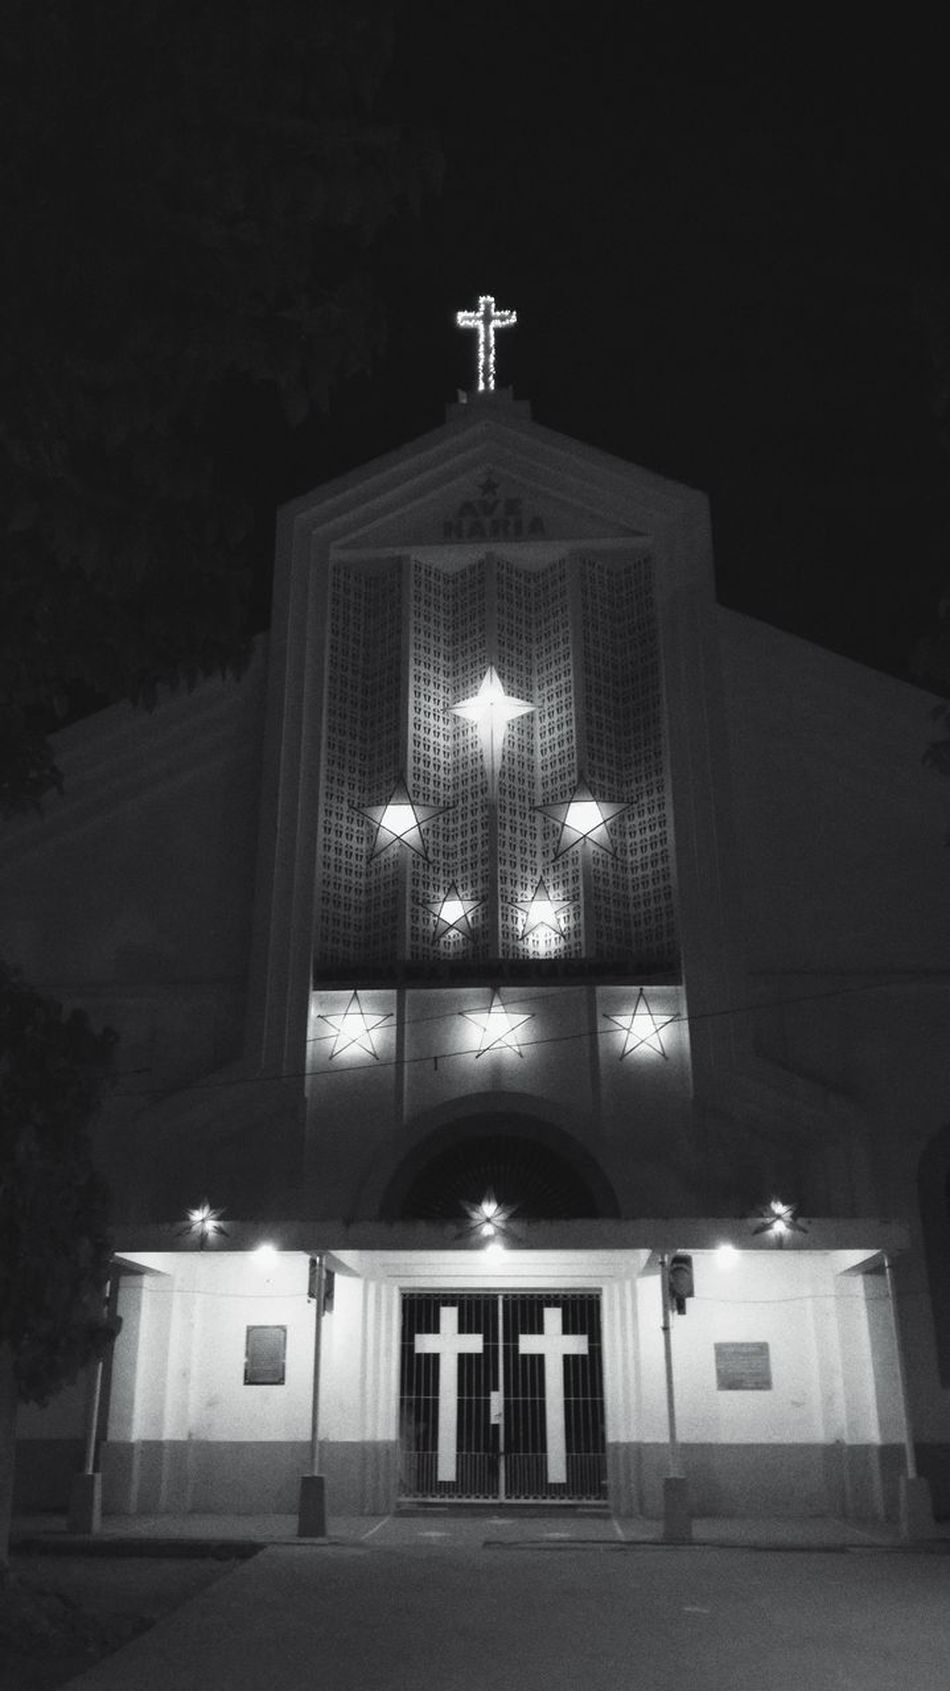 Stars Built Structure Spirituality Religion Architecture Place Of Worship Arts Culture And Entertainment EyeEm Travel Photography Black & White Photography Black And White Collection  Eyeem Philippines Black And White Collection  Culture And Tradition Belief And Faith Place Of Worship The City Light Lines And Patterns EyeemPhilippines Geometric Architecture Travel